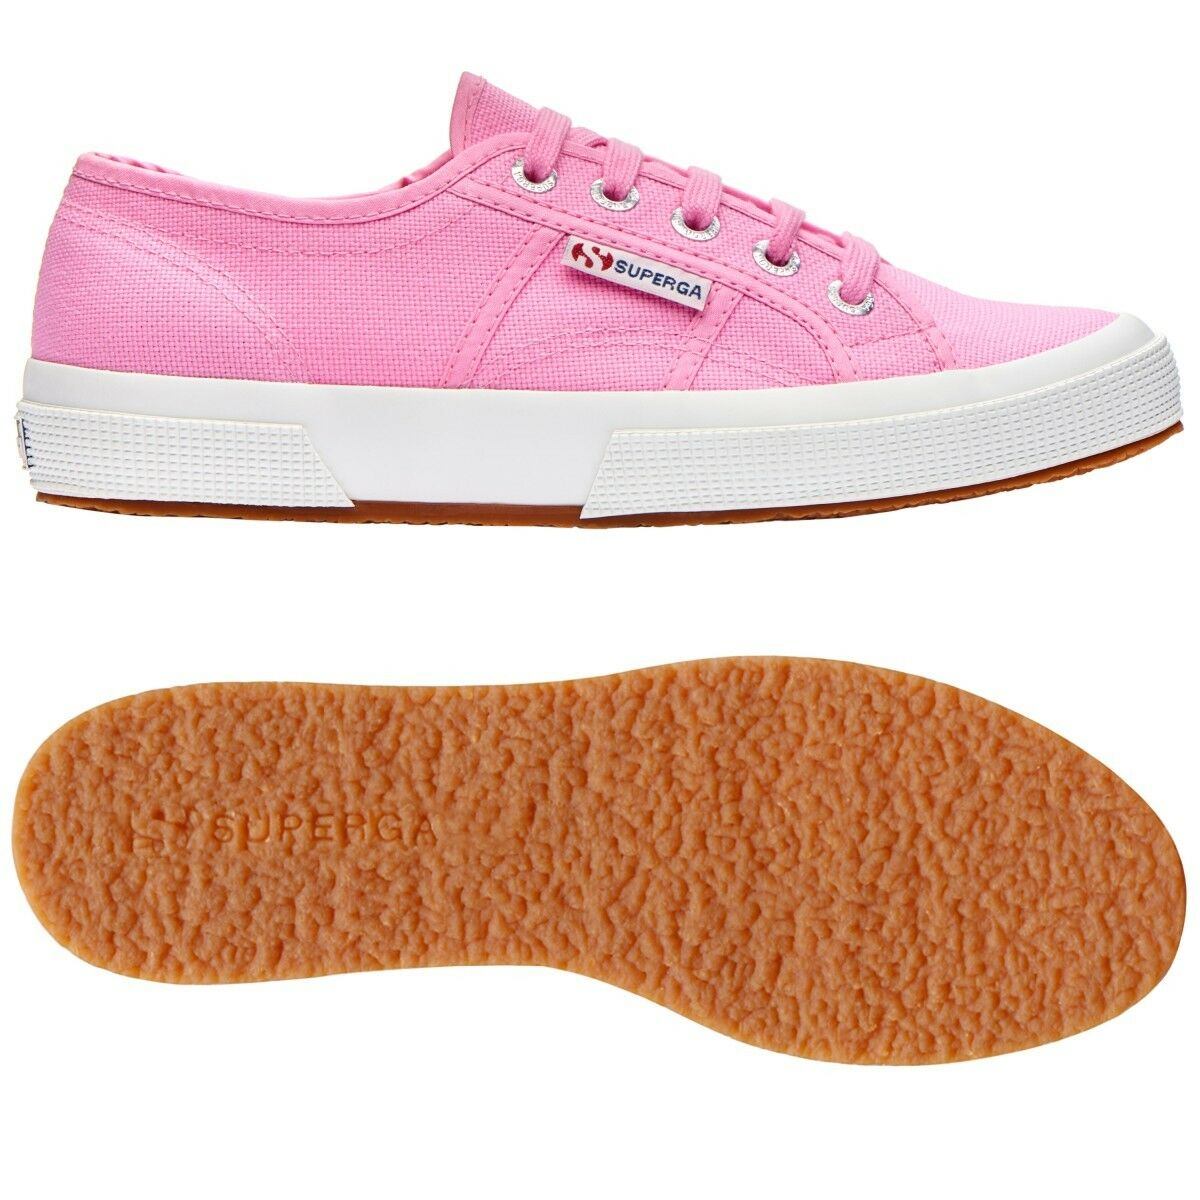 Superga 2750 Cotu Classic Fashion Sneakers Women's - Begonia Pink S000010 V28